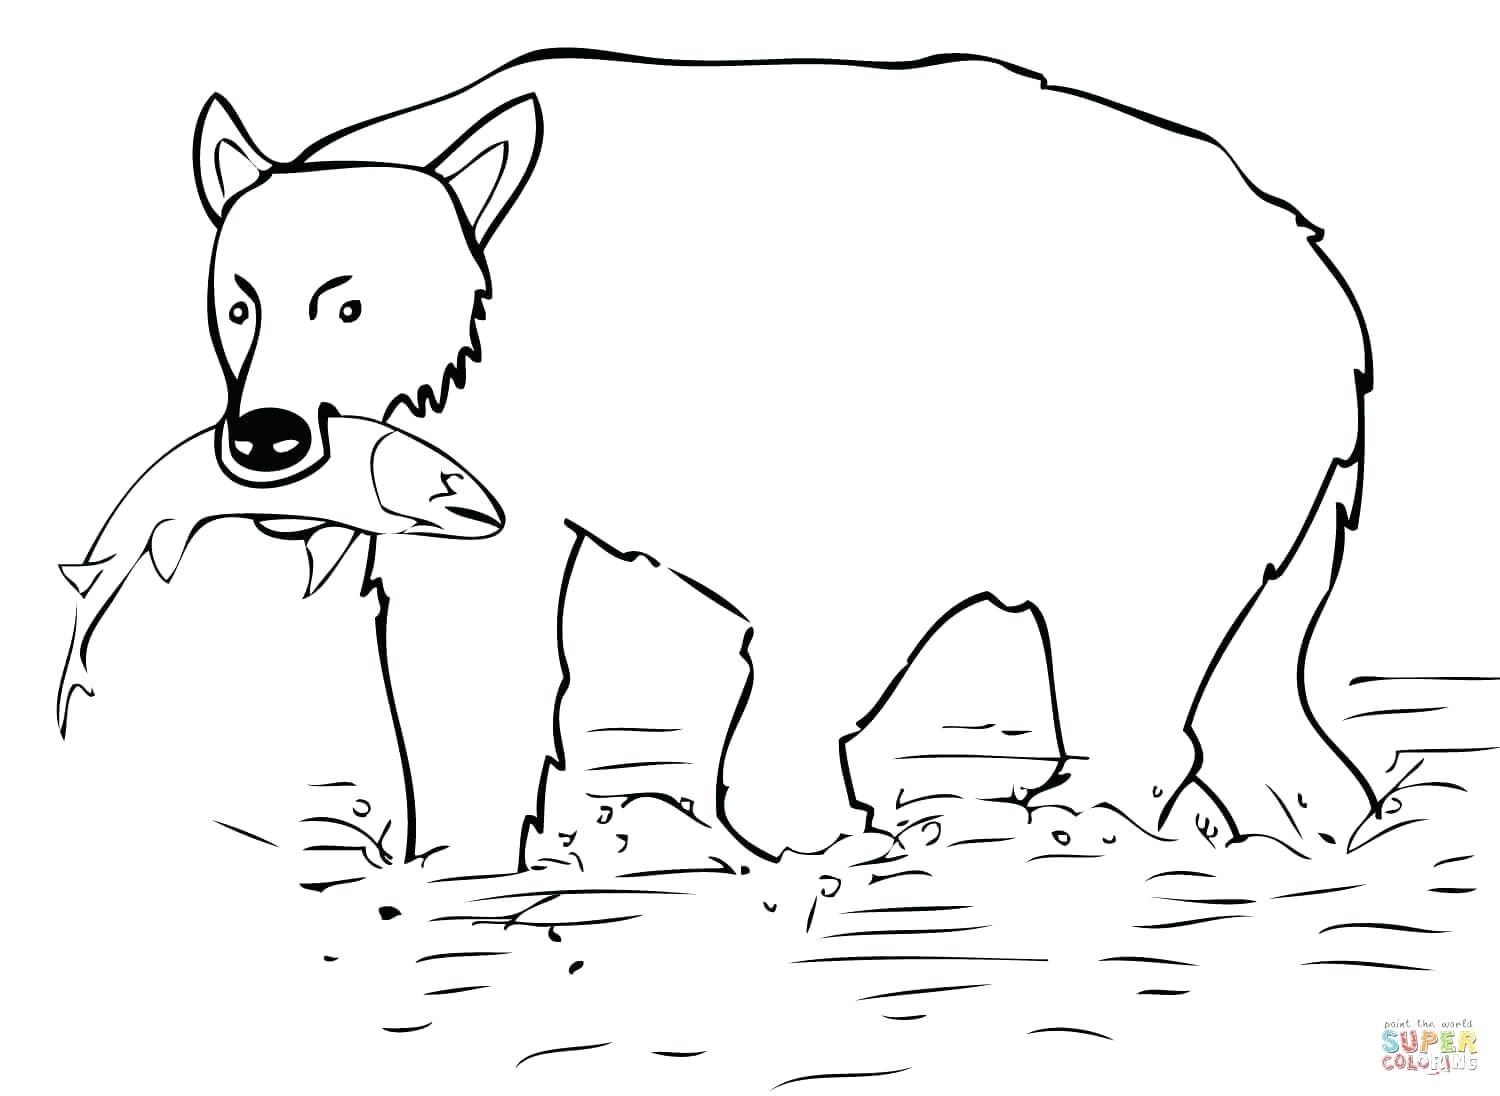 The Best Free Oso Drawing Images Download From 16 Free